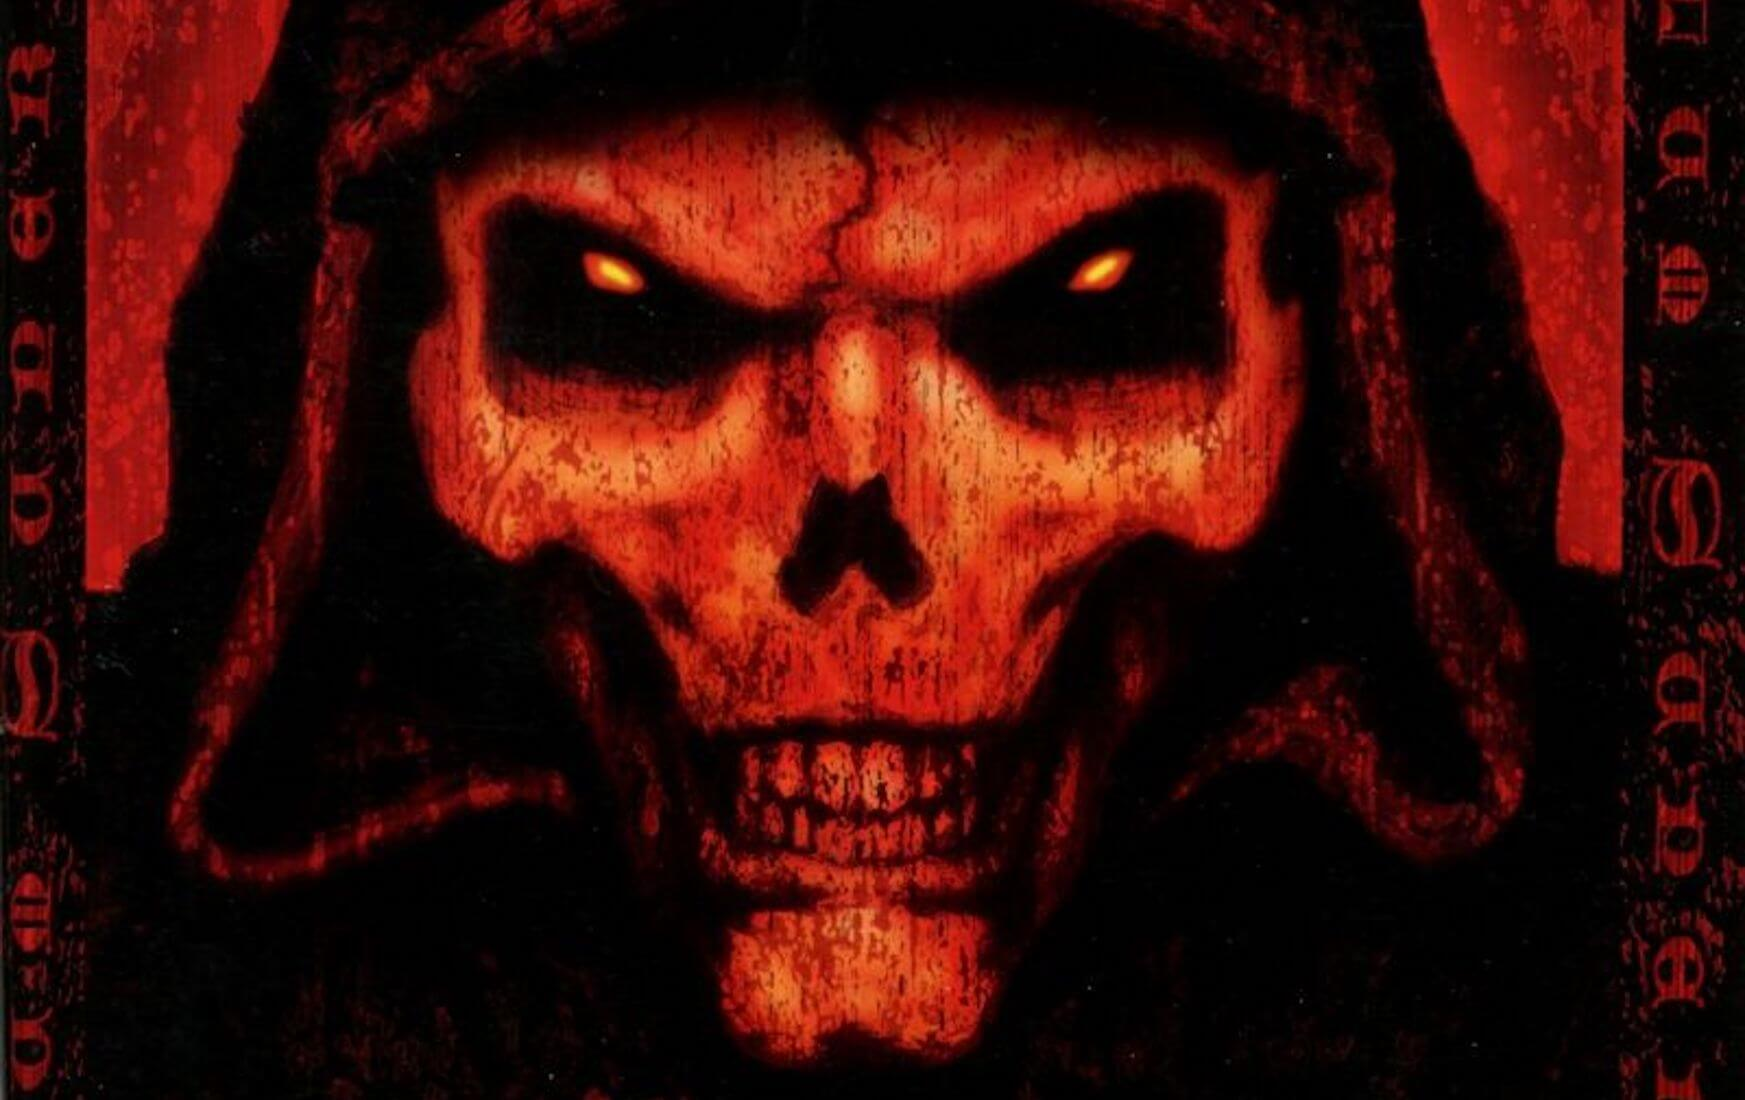 Diablo 2 remaster will reportedly arrive in Q4 2020